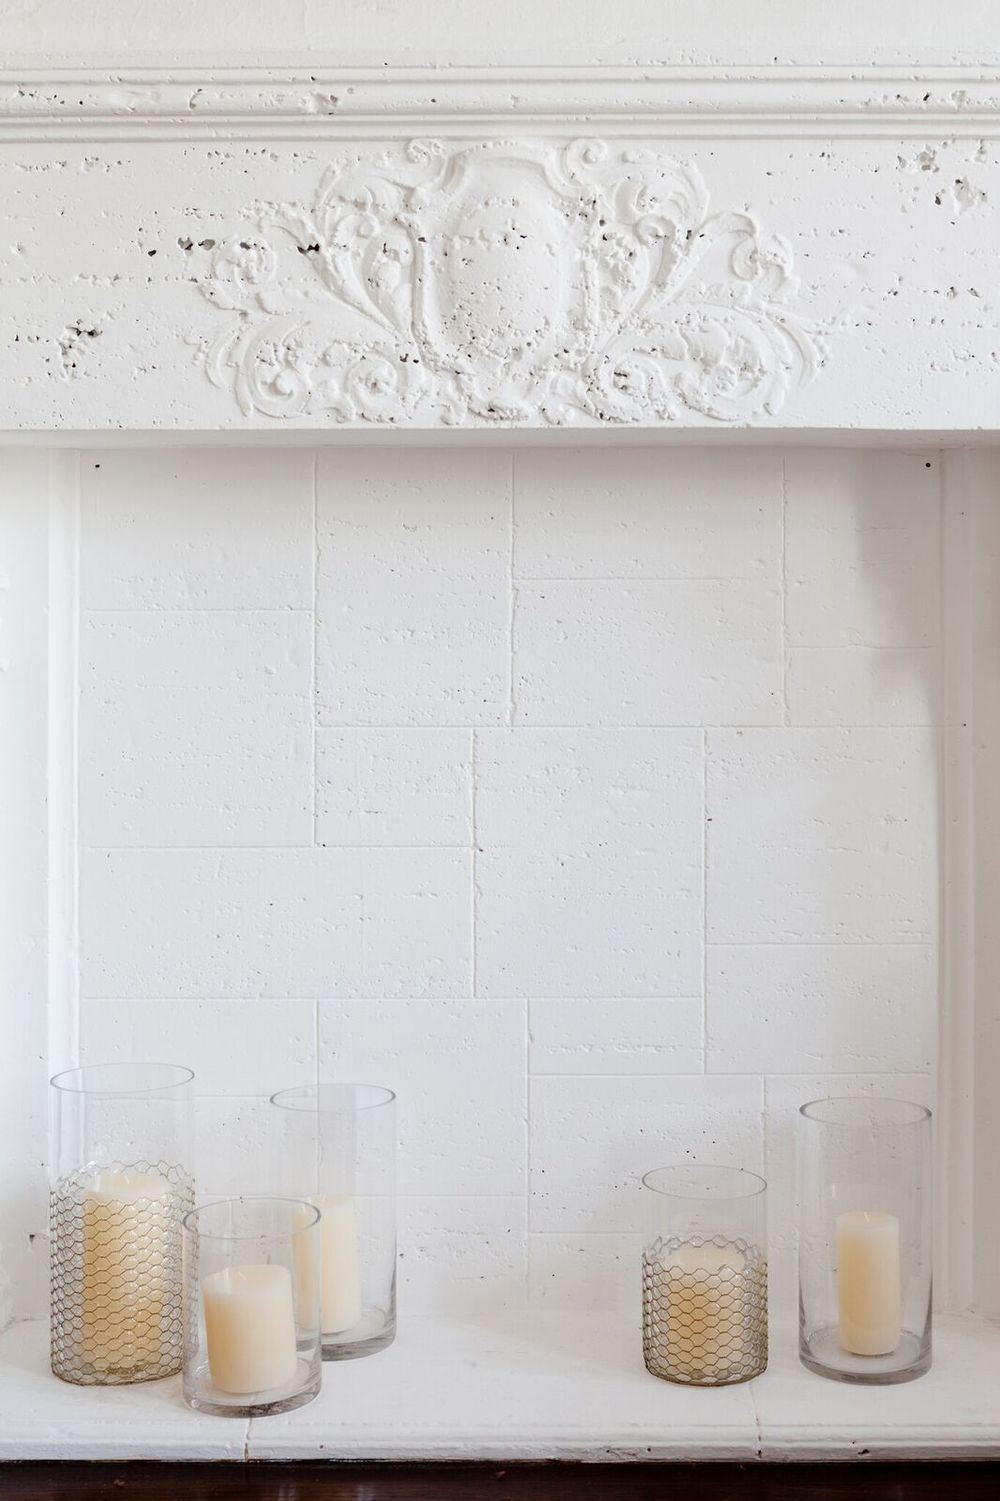 There was so much beautiful detail to the fireplace that I was hesitant to mess it up by adding too much. Simple candles in big glass cylinders (the ones with the chicken wire!) make it glow again.